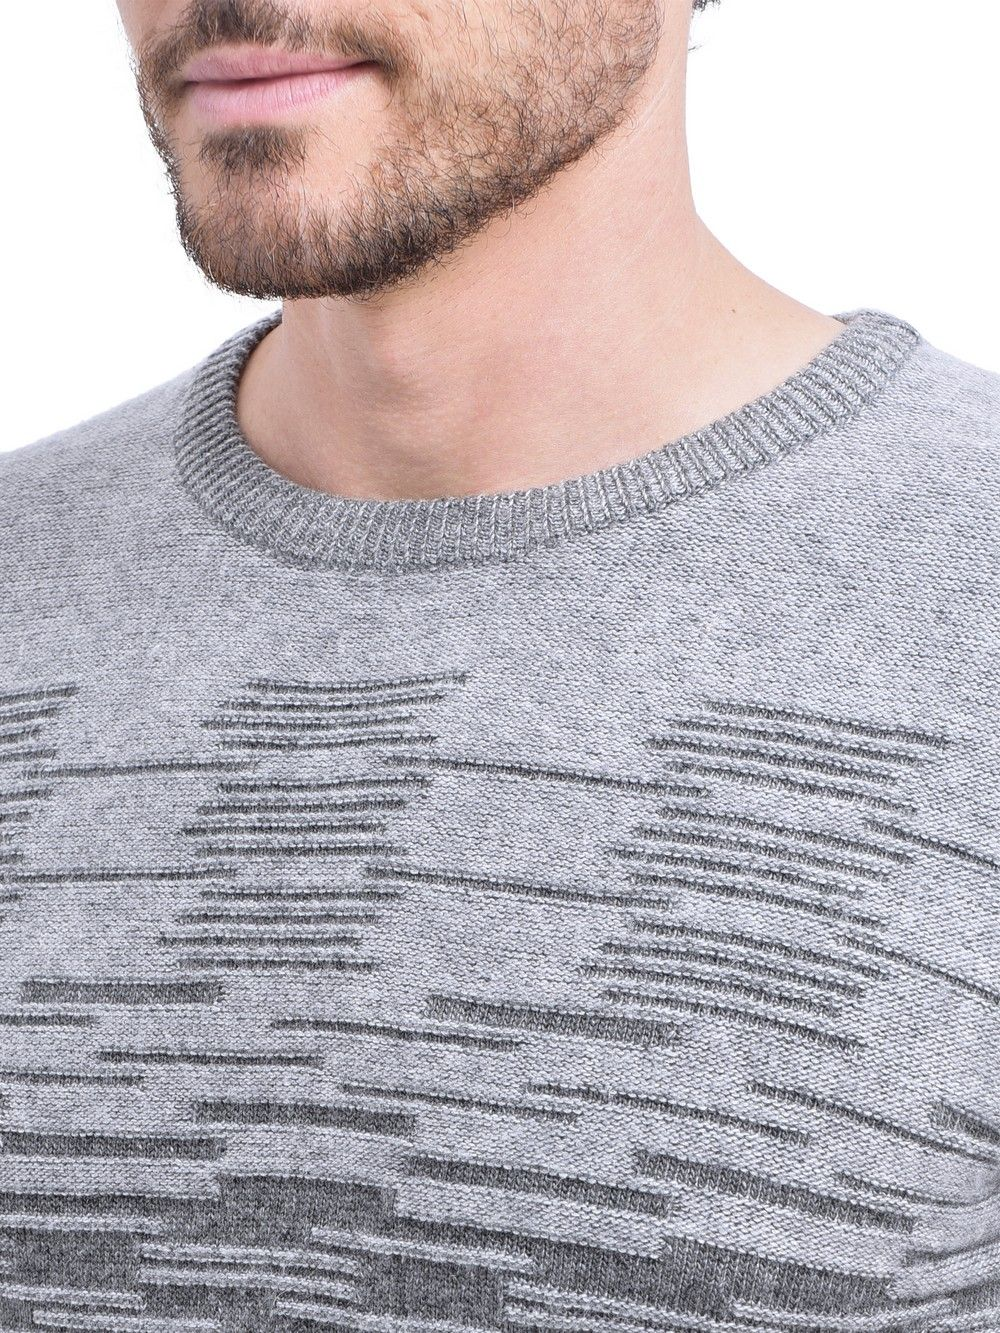 C&JO Round Neck 3-ply Jacquard Sweater in Grey